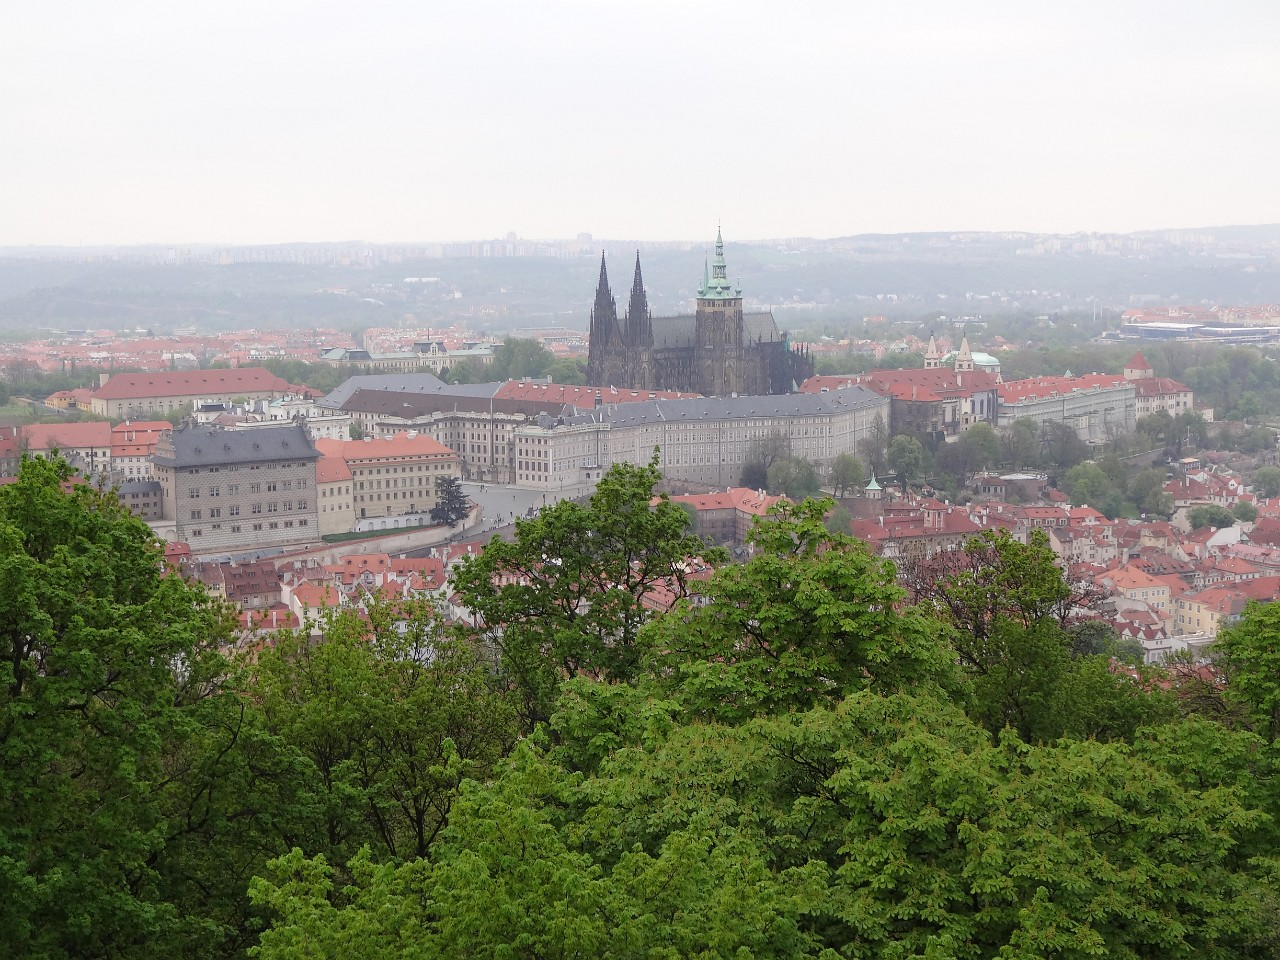 St. Vitus Cathedral from Petrin Tower